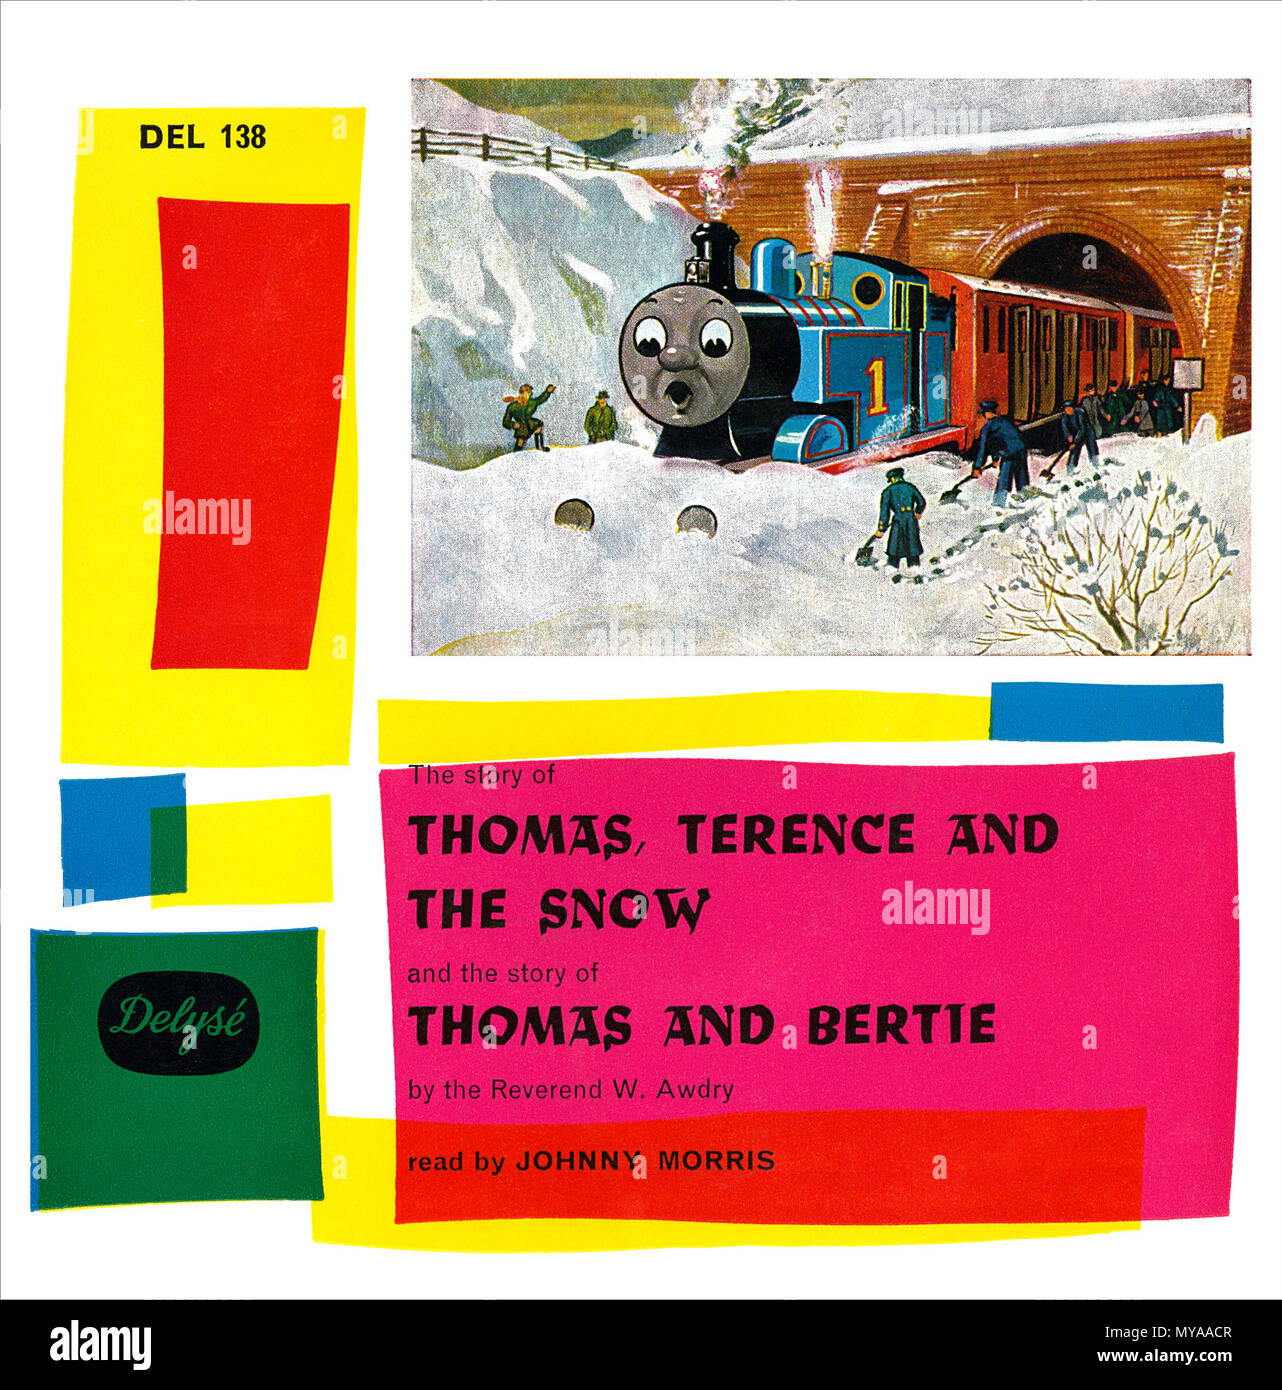 Cover of a 1964 7 inch EP featuring Johnny Morris reading Thomas The Tank Engine stories. Stock Photo